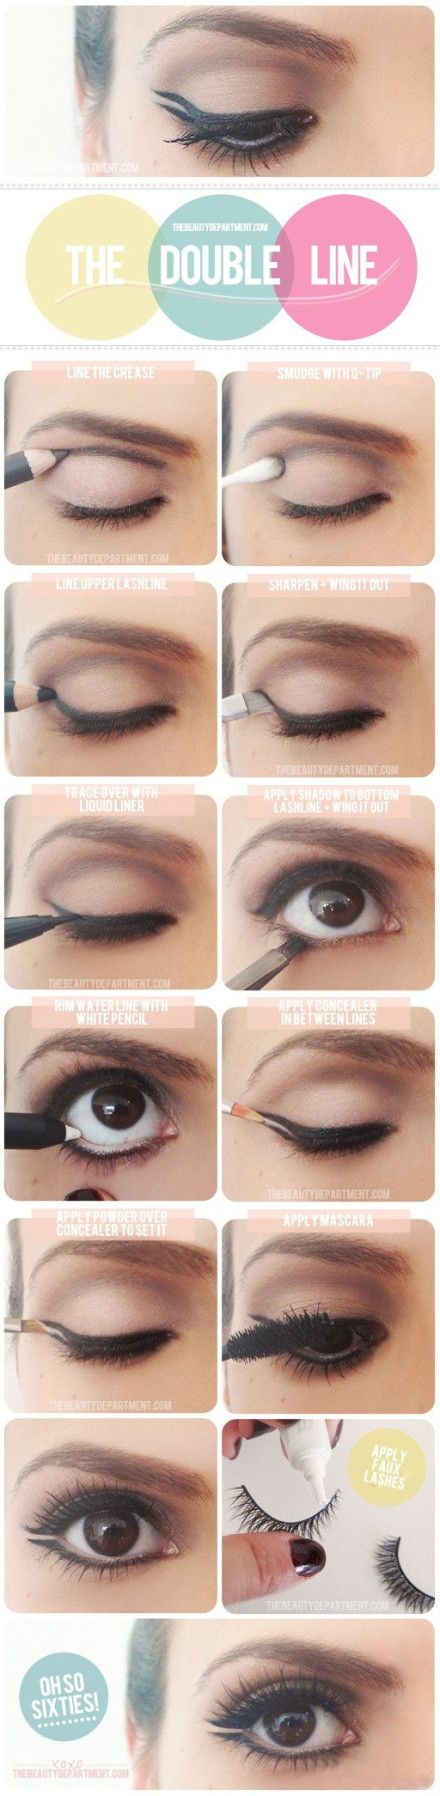 The double line #eyeliners #makeup #pictorial